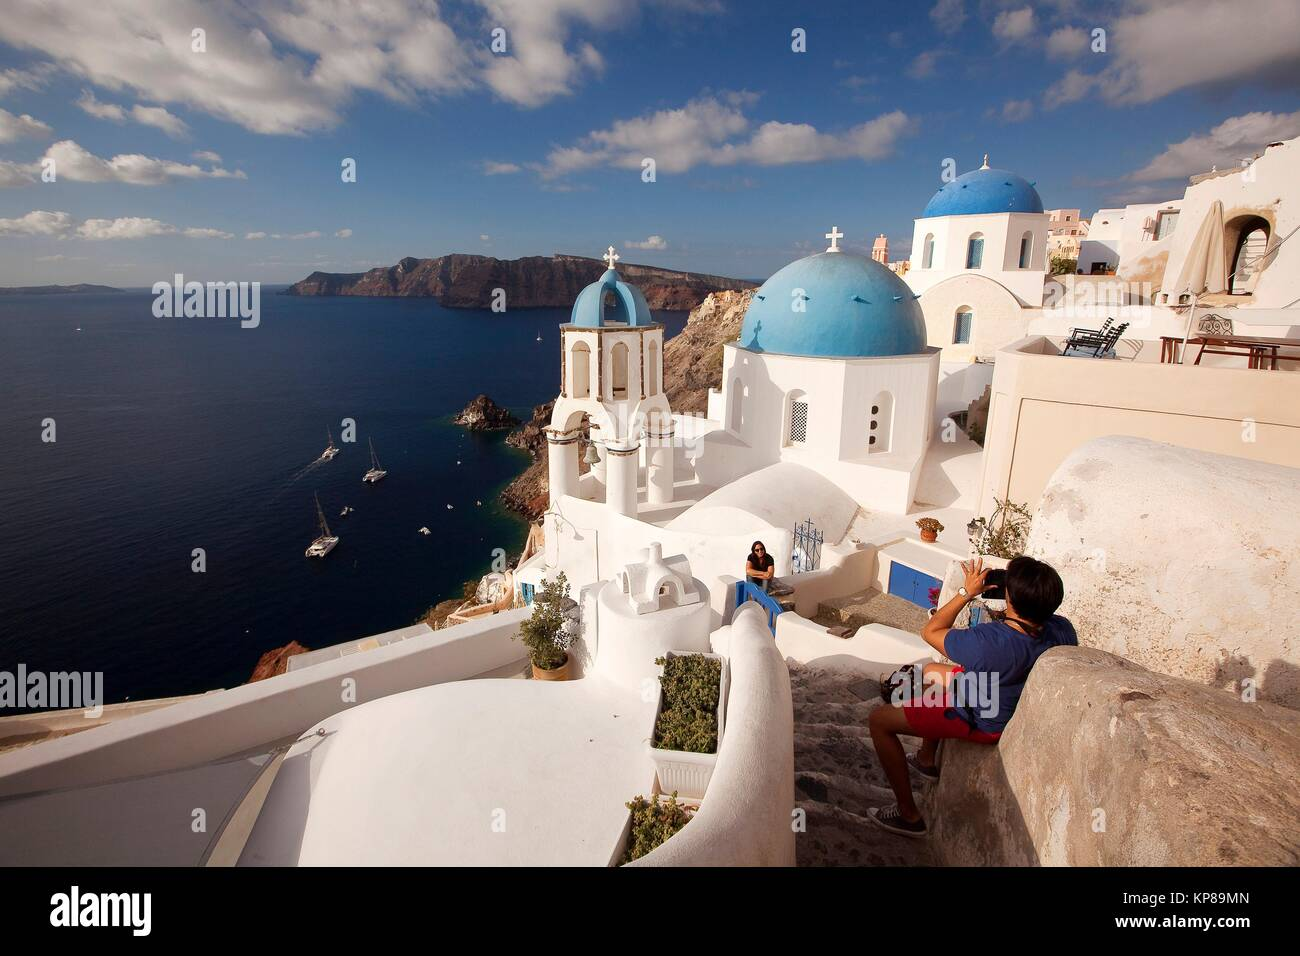 Tourists taking photos in front of the blue domed churches in Oia village, Santorini, Cyclades Islands, Greek Islands, Stock Photo